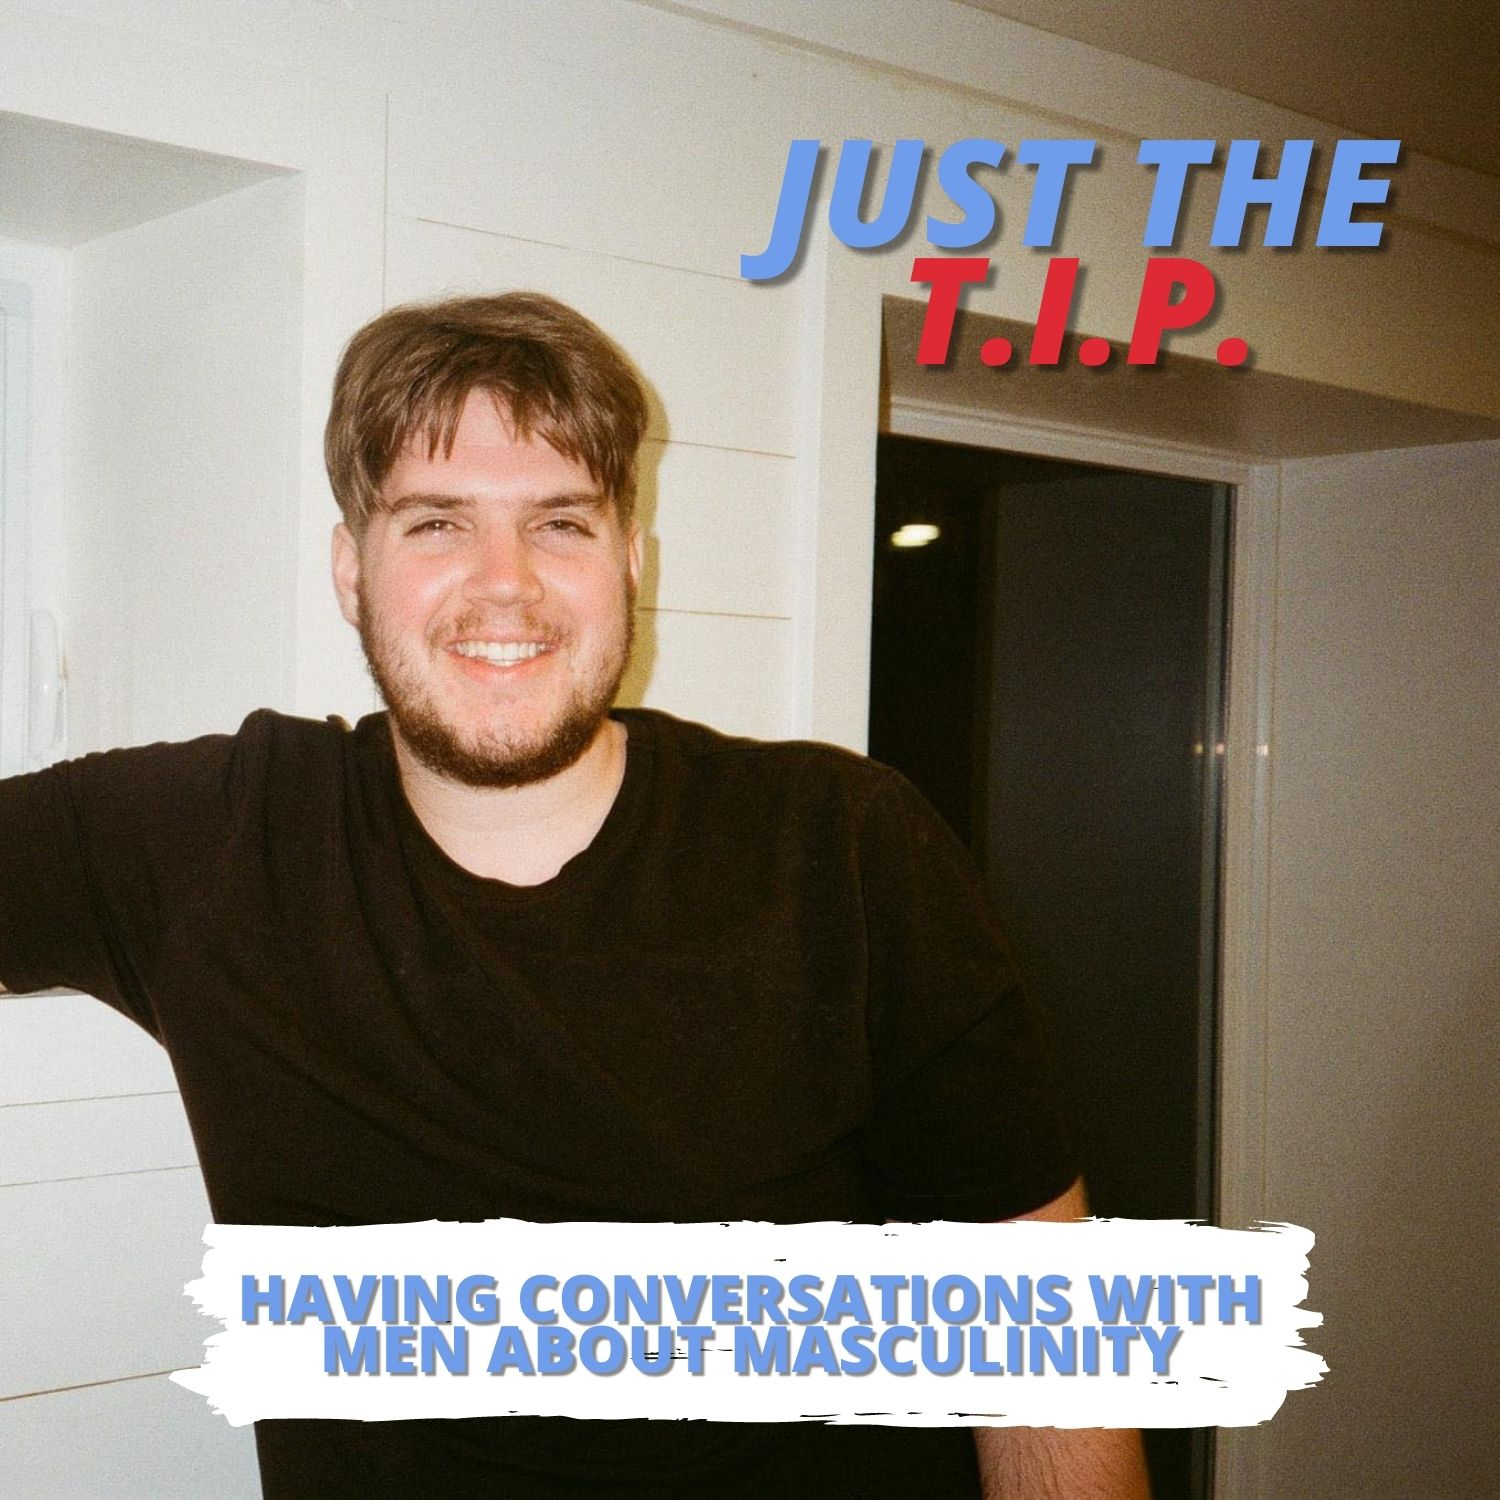 Just the TIP | How To Have Conversations With Men About Masculinity